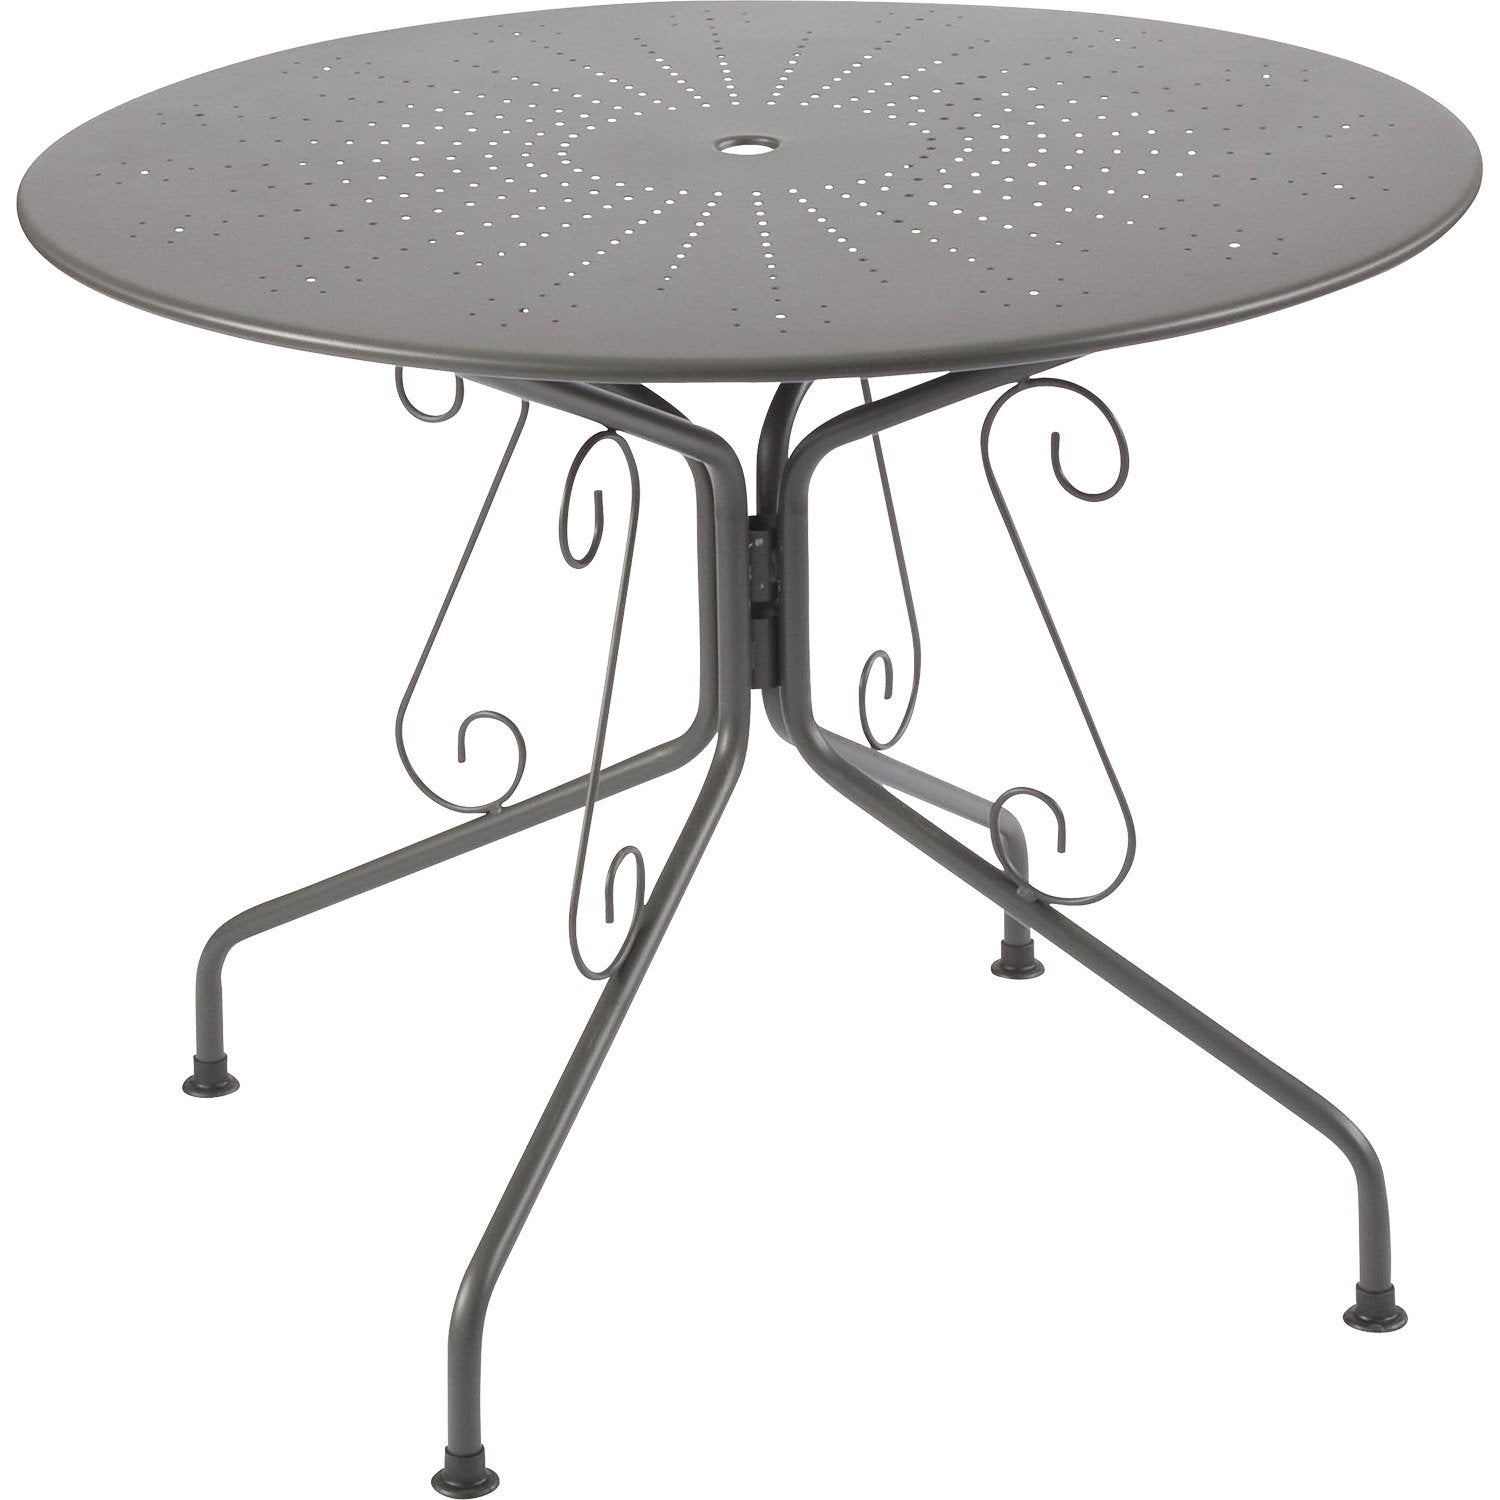 Table de jardin romantique ronde gris graphithe 4 personnes leroy merlin Table salon de jardin ronde